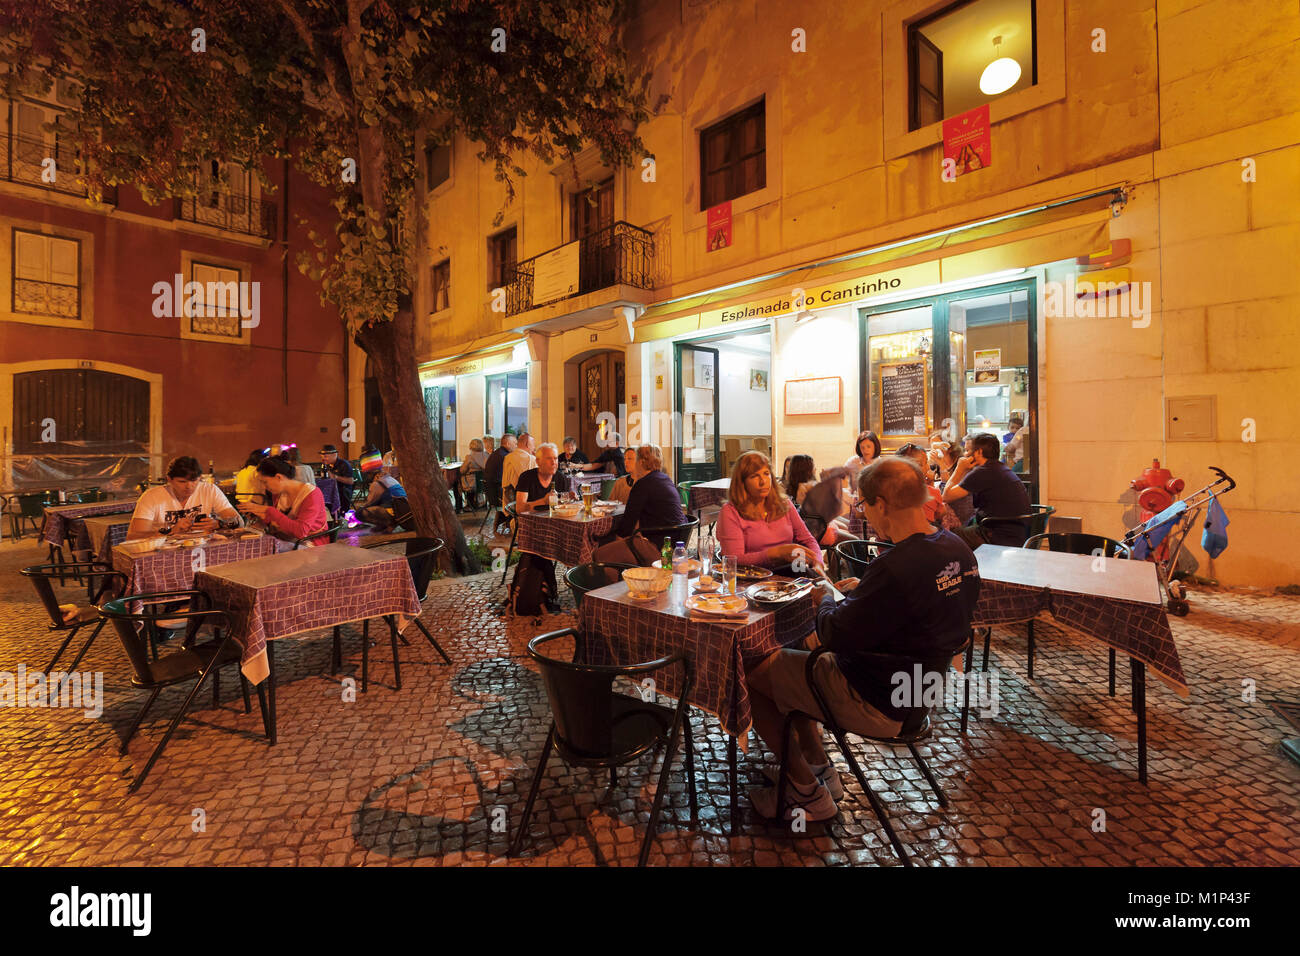 Restaurant, Alfama district, Lisbon, Portugal, Europe - Stock Image